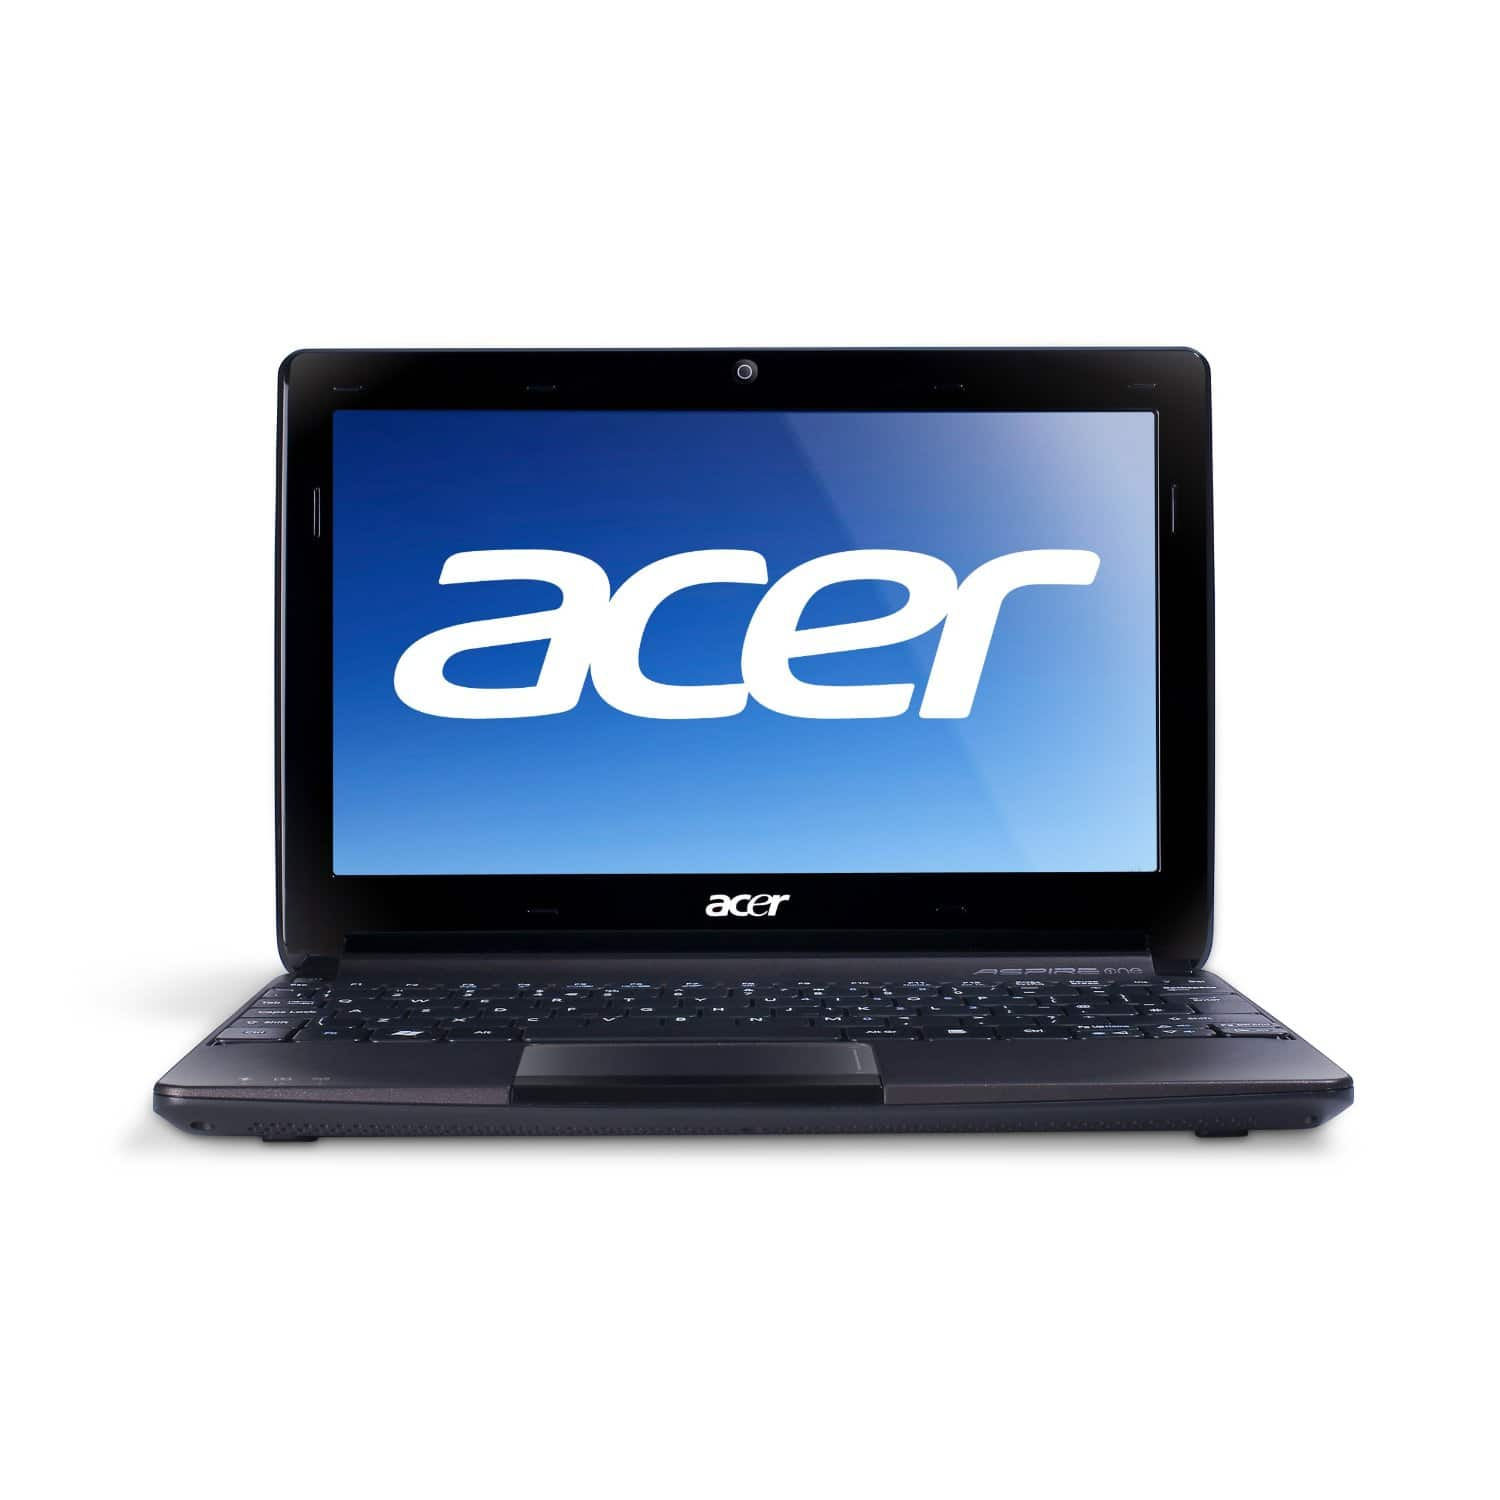 "Acer Aspire AO722-0825 Netbook: AMD Dual Core C-60 1GHz, 11.6"" LED 1366x768, 4GB DDR3, 320GB HDD, Radeon HD 6290, WiFi N, HDMI, 6-Cell Battery, Win 7 Prem 64-Bit $250 + Free Shippi"